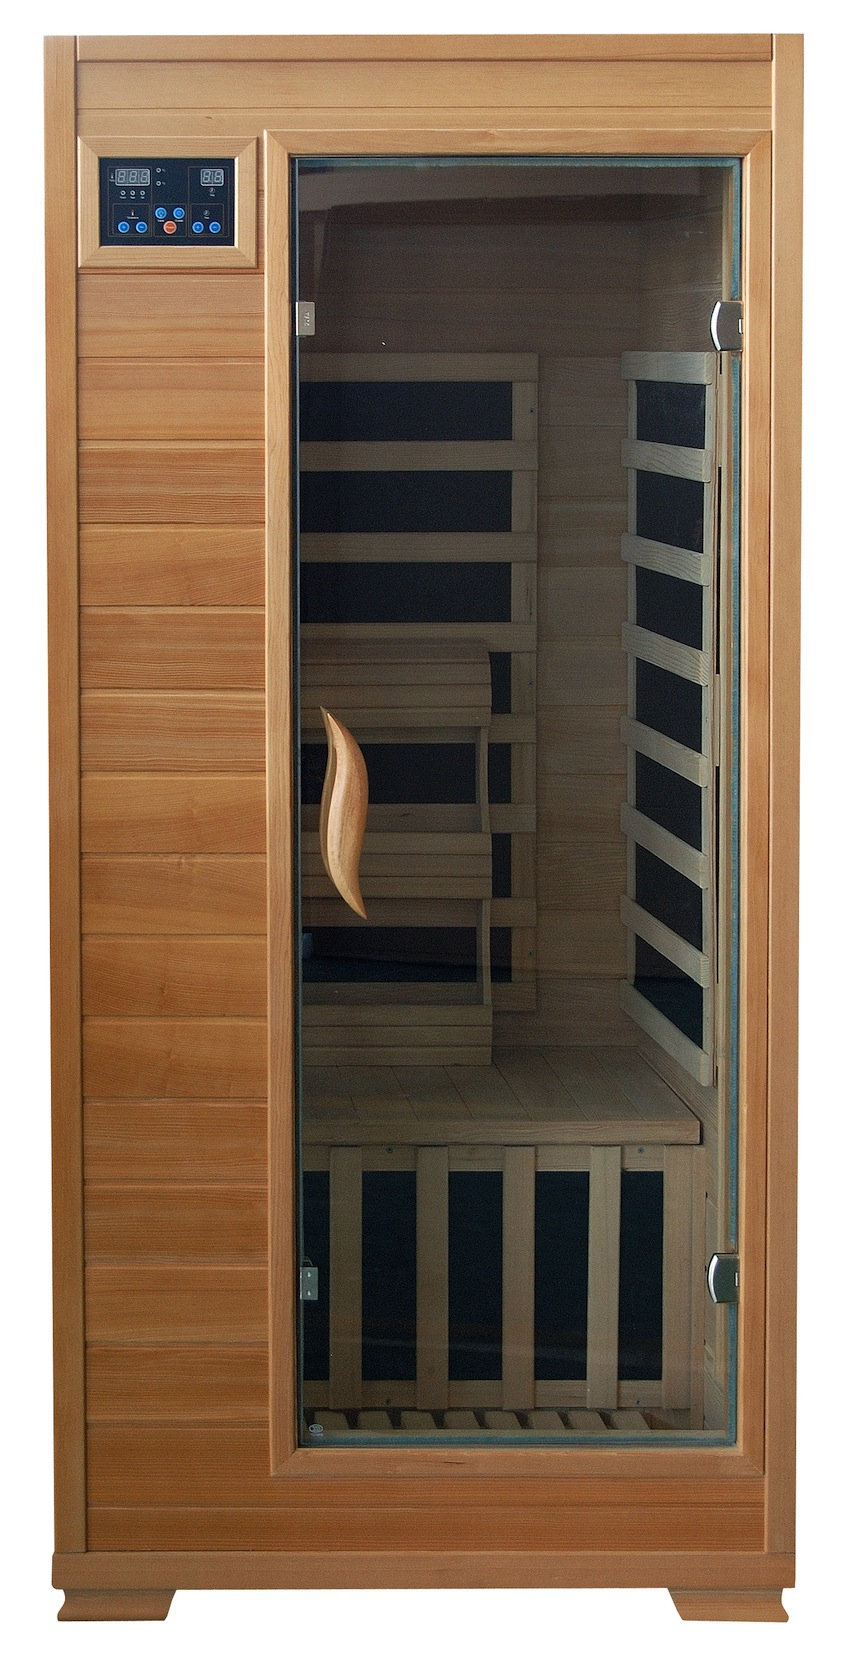 1 Person Far Infrared Sauna With Carbon Heaters